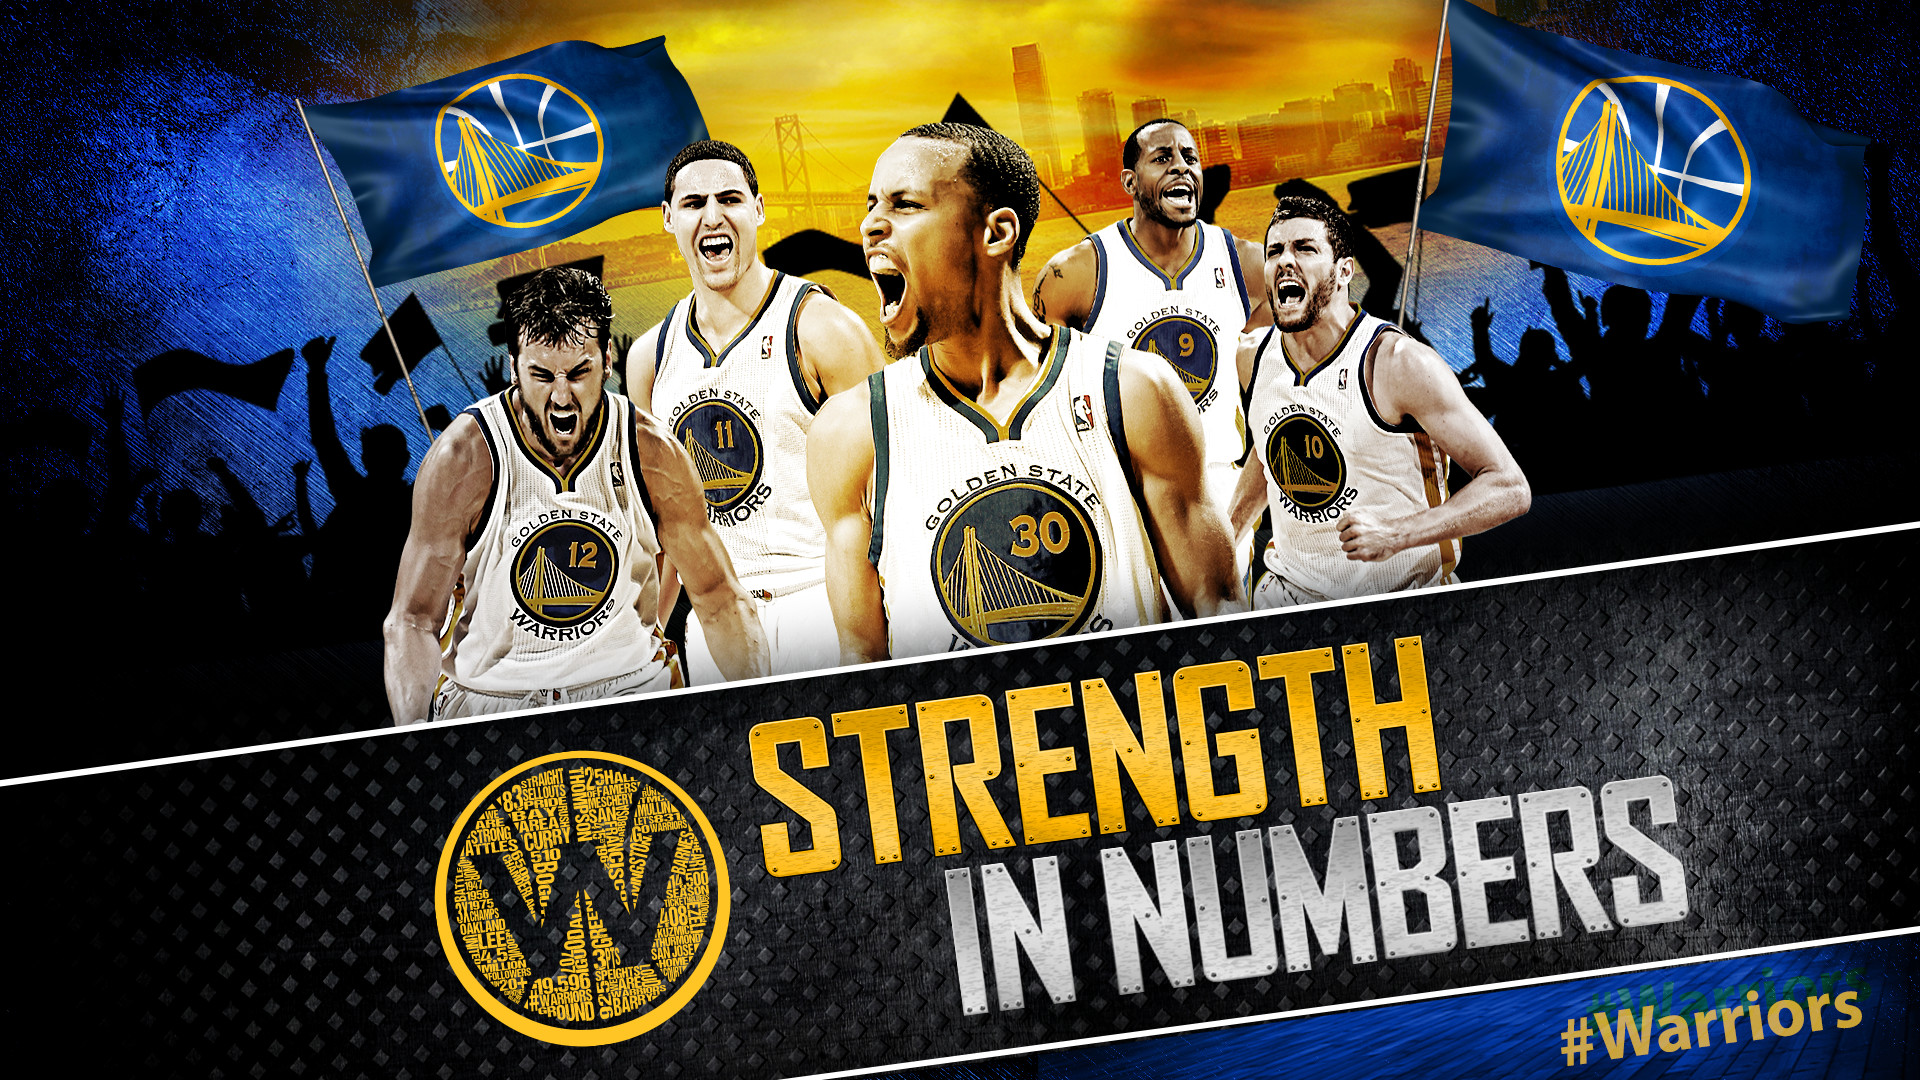 Golden state warriors 2018 wallpapers 67 pictures - Golden state warriors wallpaper 2017 ...